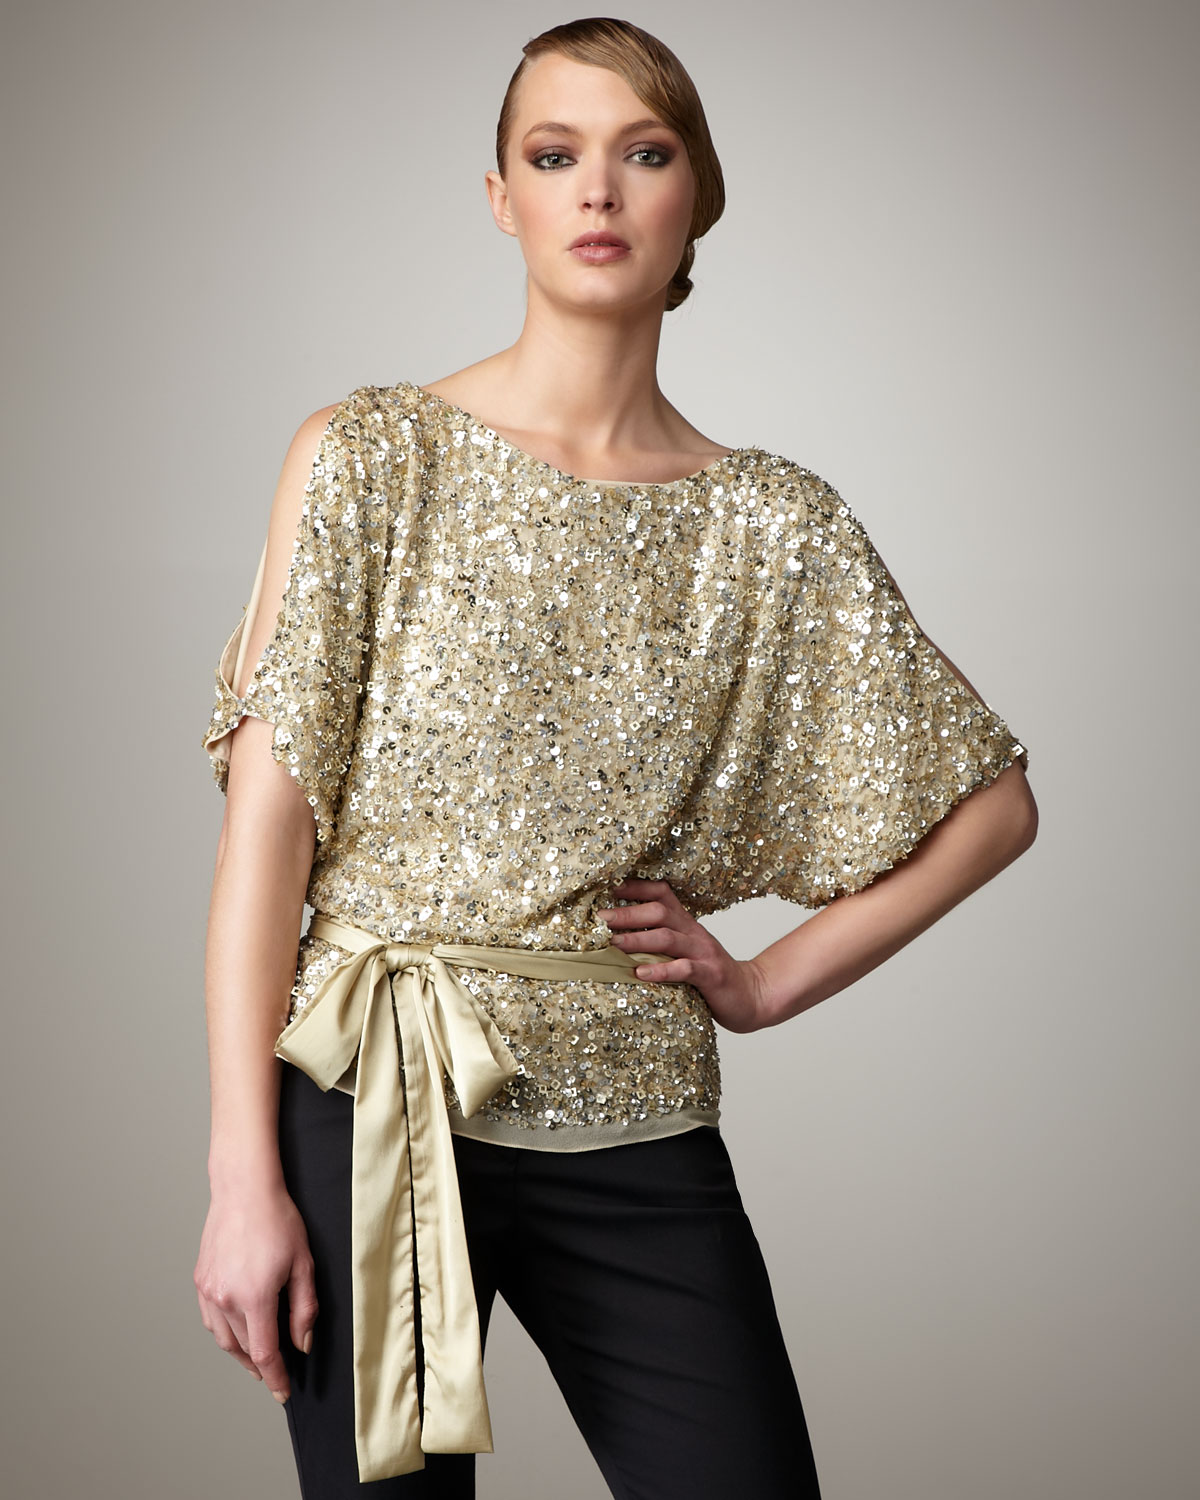 Top Women S Fashion Magazines: Aidan Mattox Cold Shoulder Sequin Top In Metallic